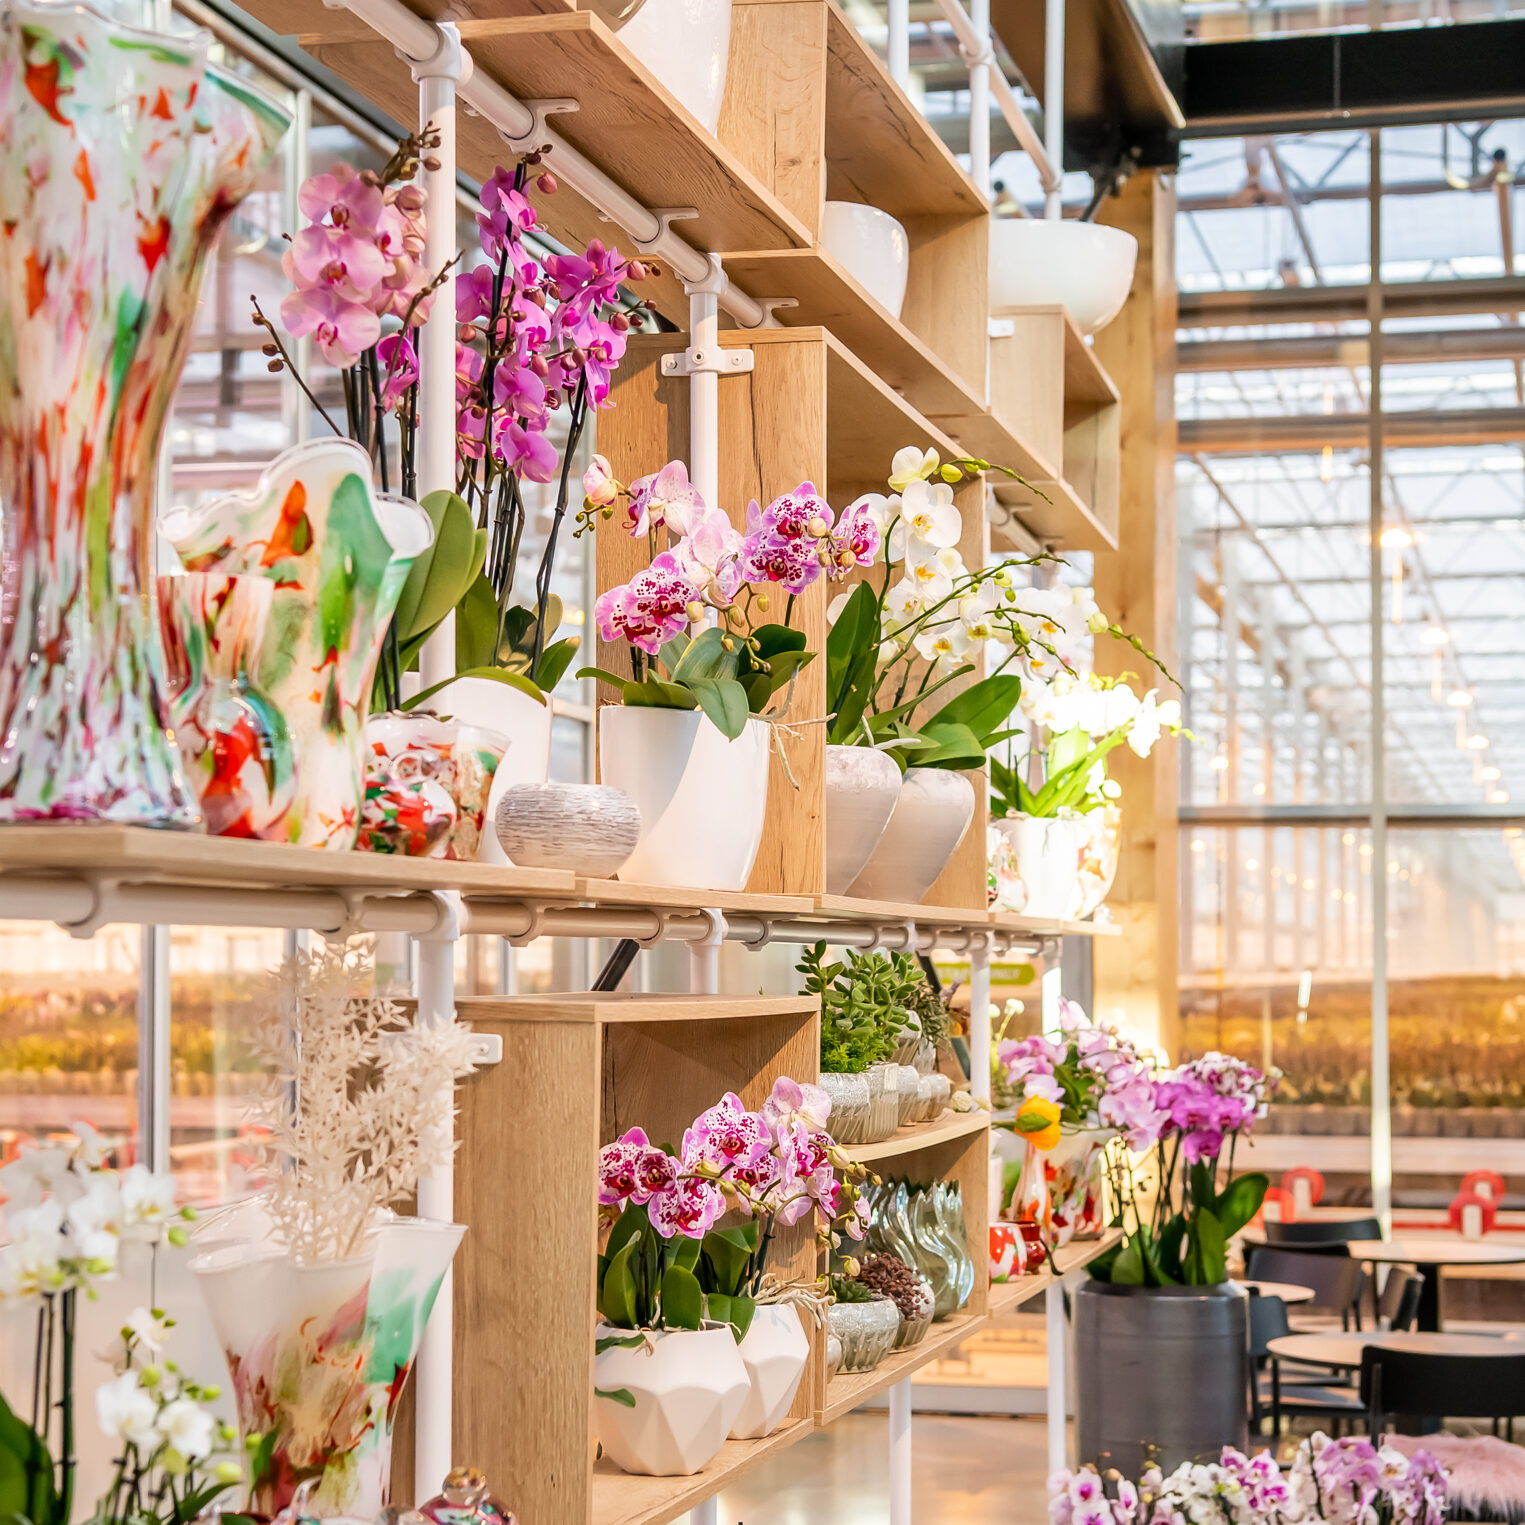 Orchid Store data and test center